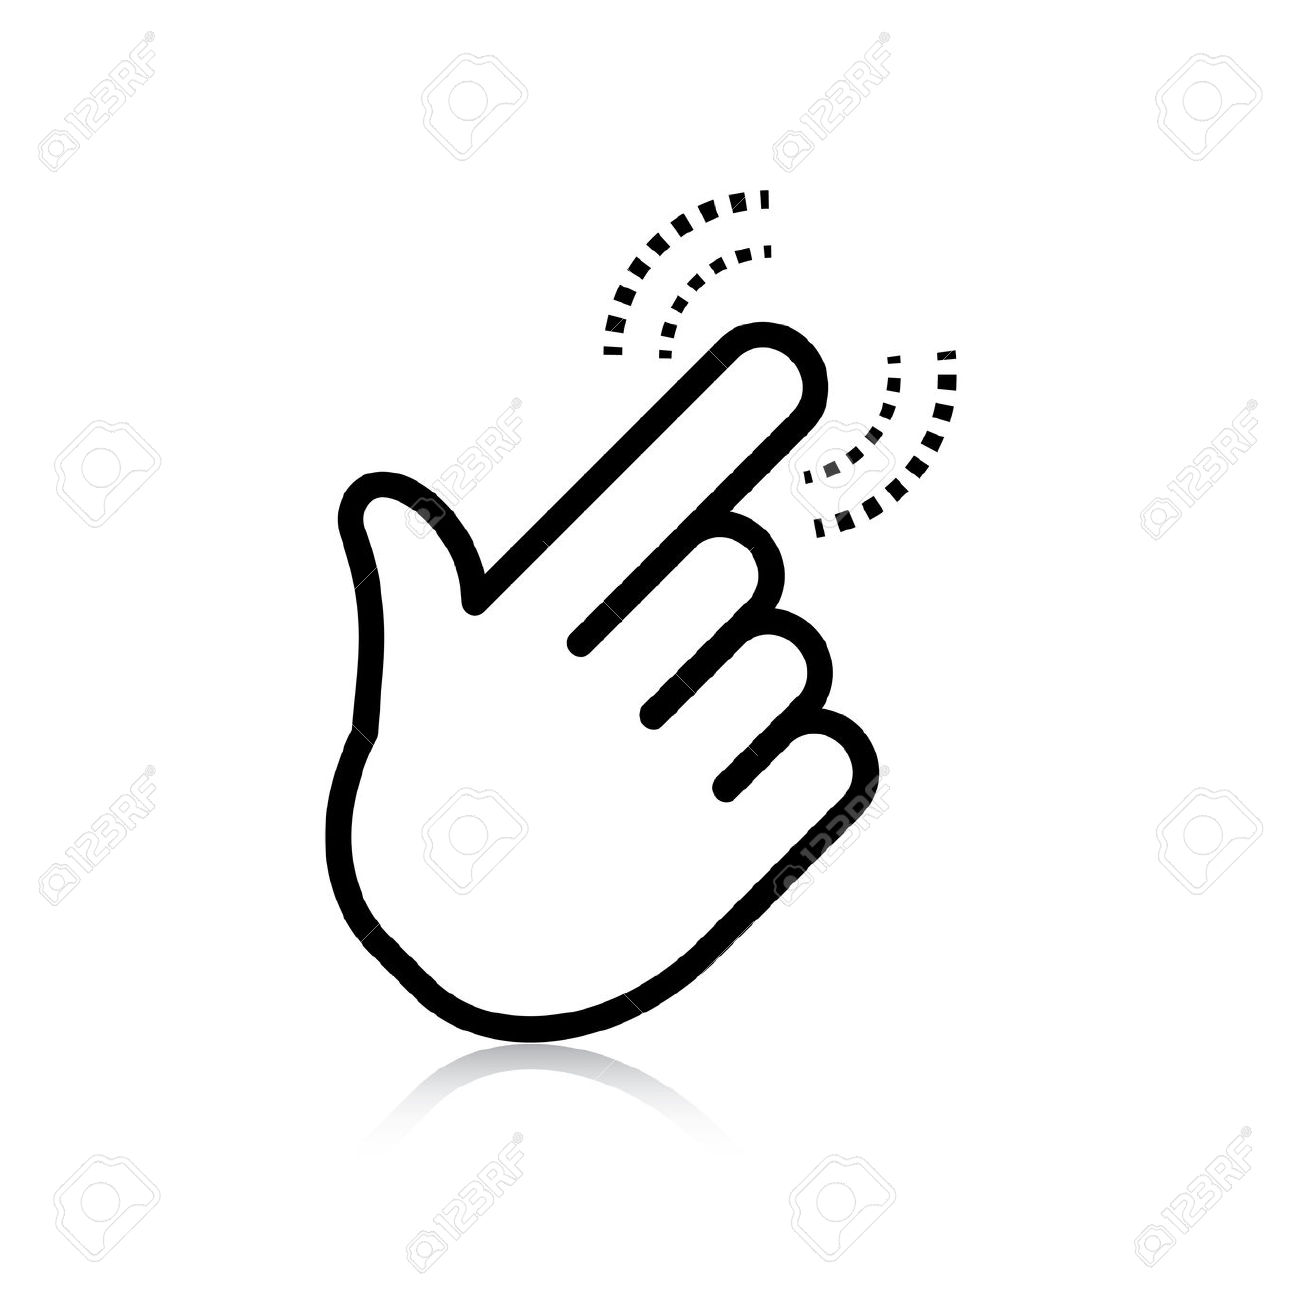 Pointer clipart finger touch Clipart BBCpersian7 hand pointing clipart